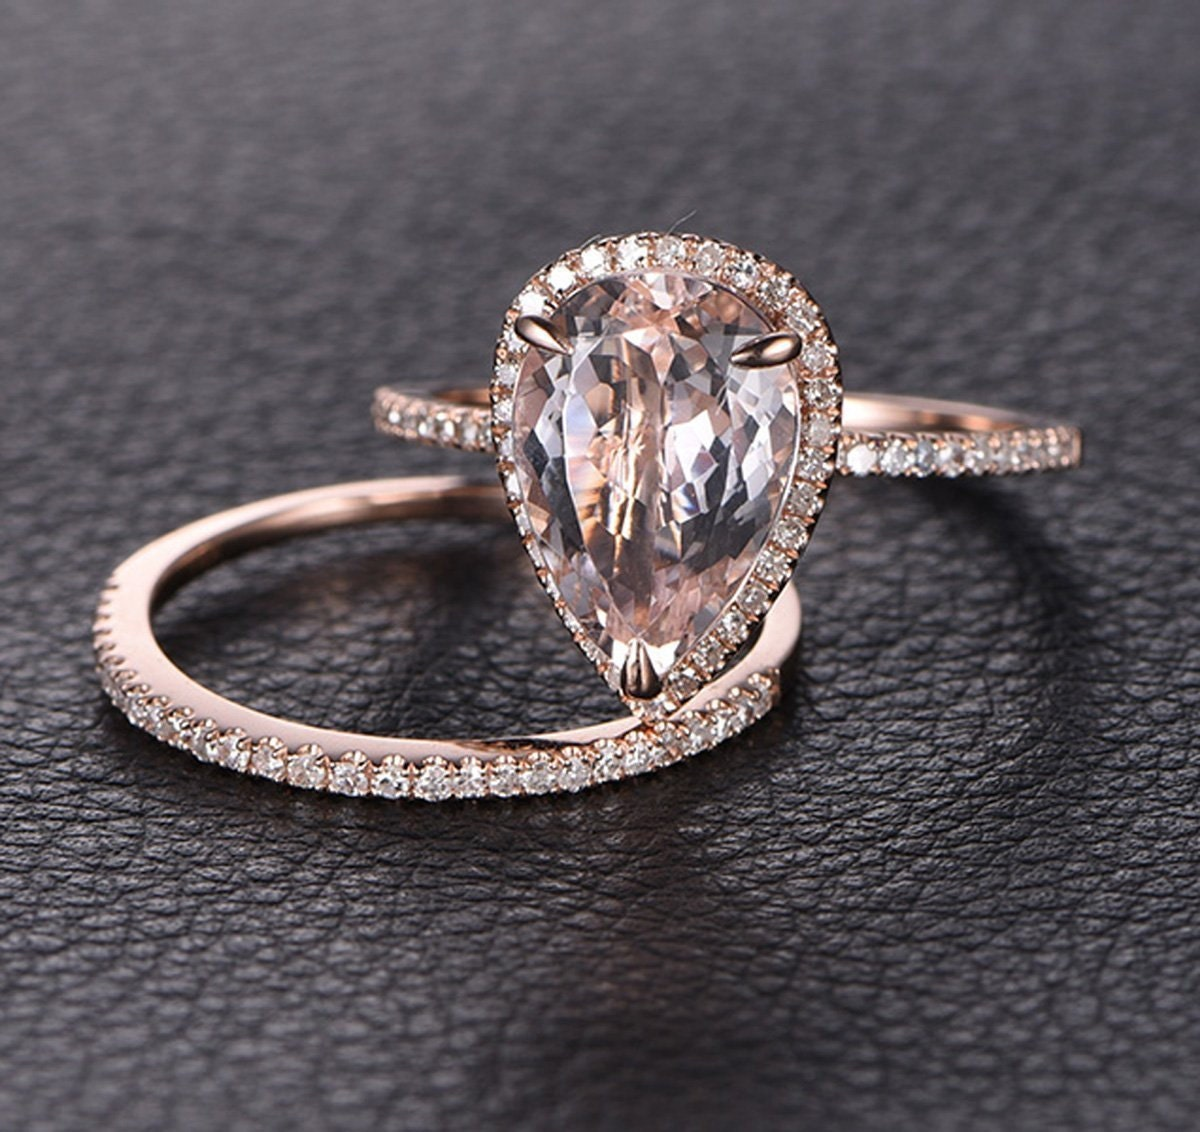 Perfect Bridal Set On Sale 1.50 Carat Pear Cut Morganite And